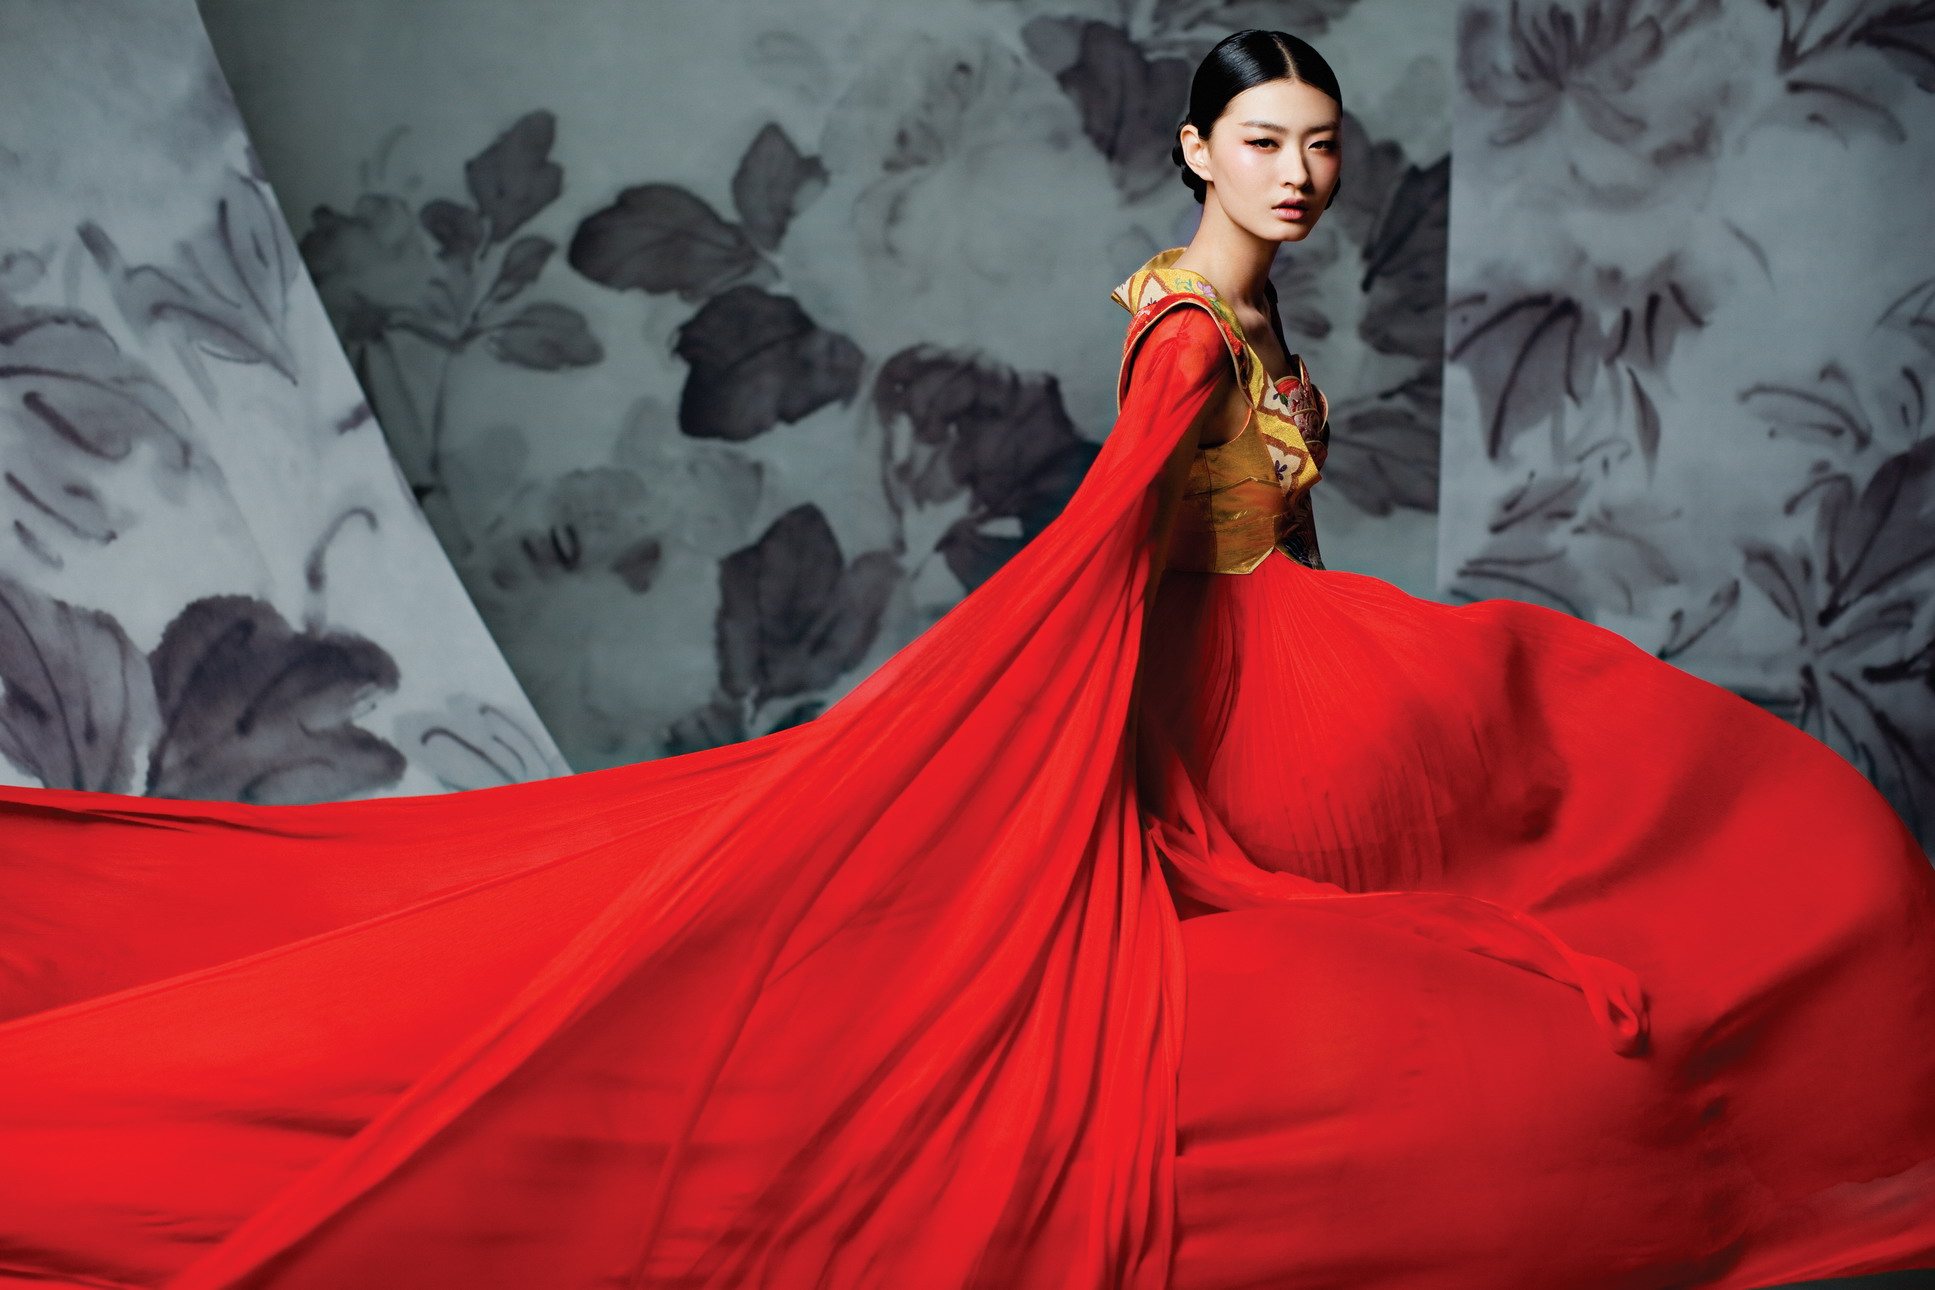 « Made in China » Luxury is taking over in China